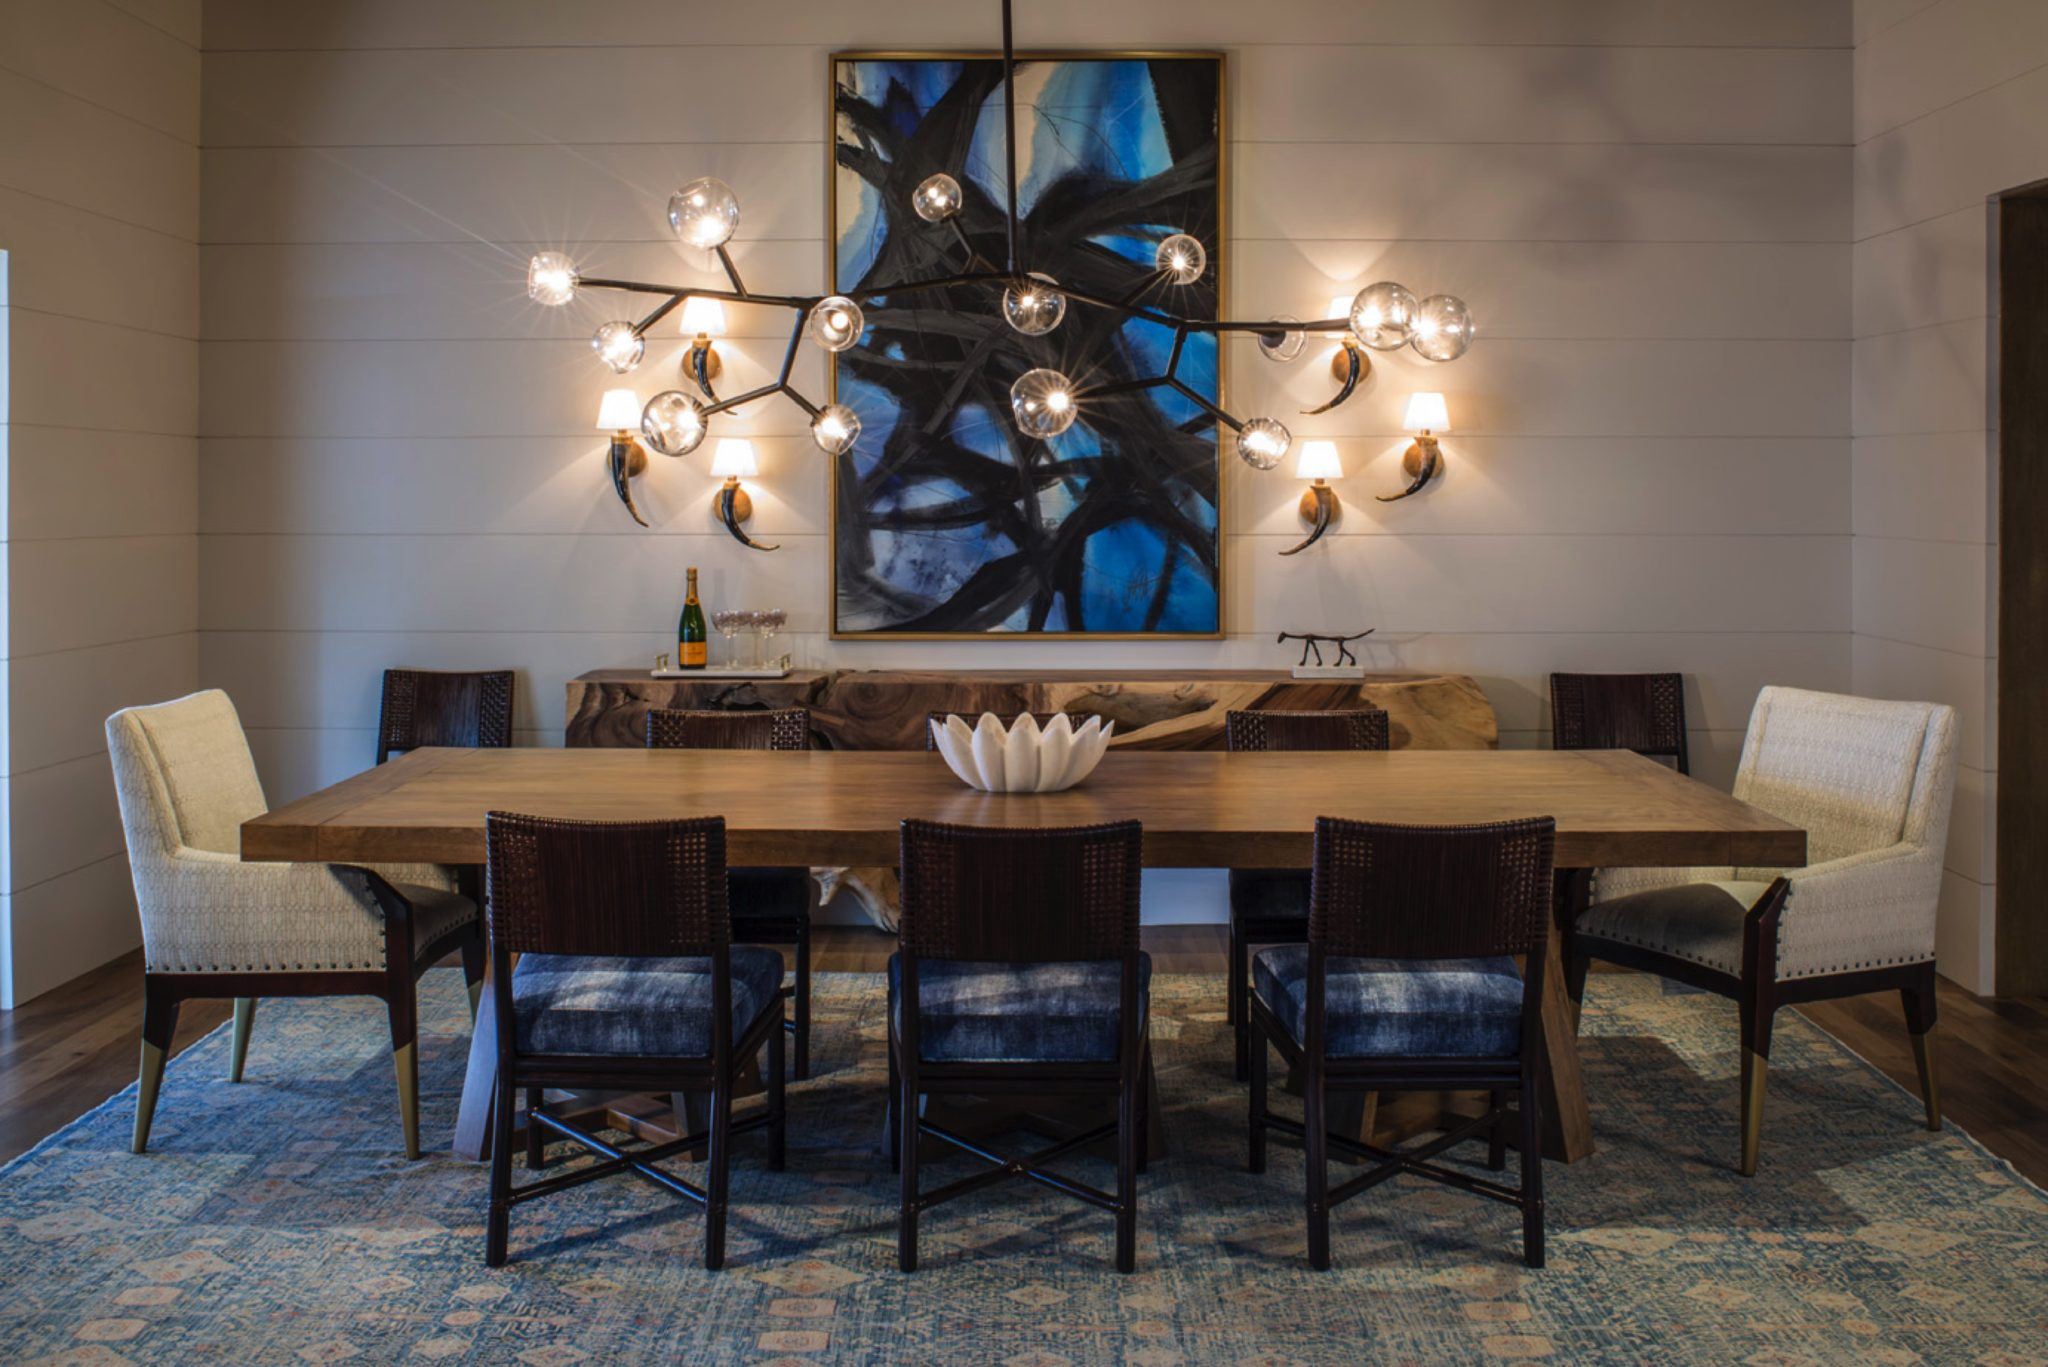 Contemporary Dining Room with Blue Accents by Norman Design Group